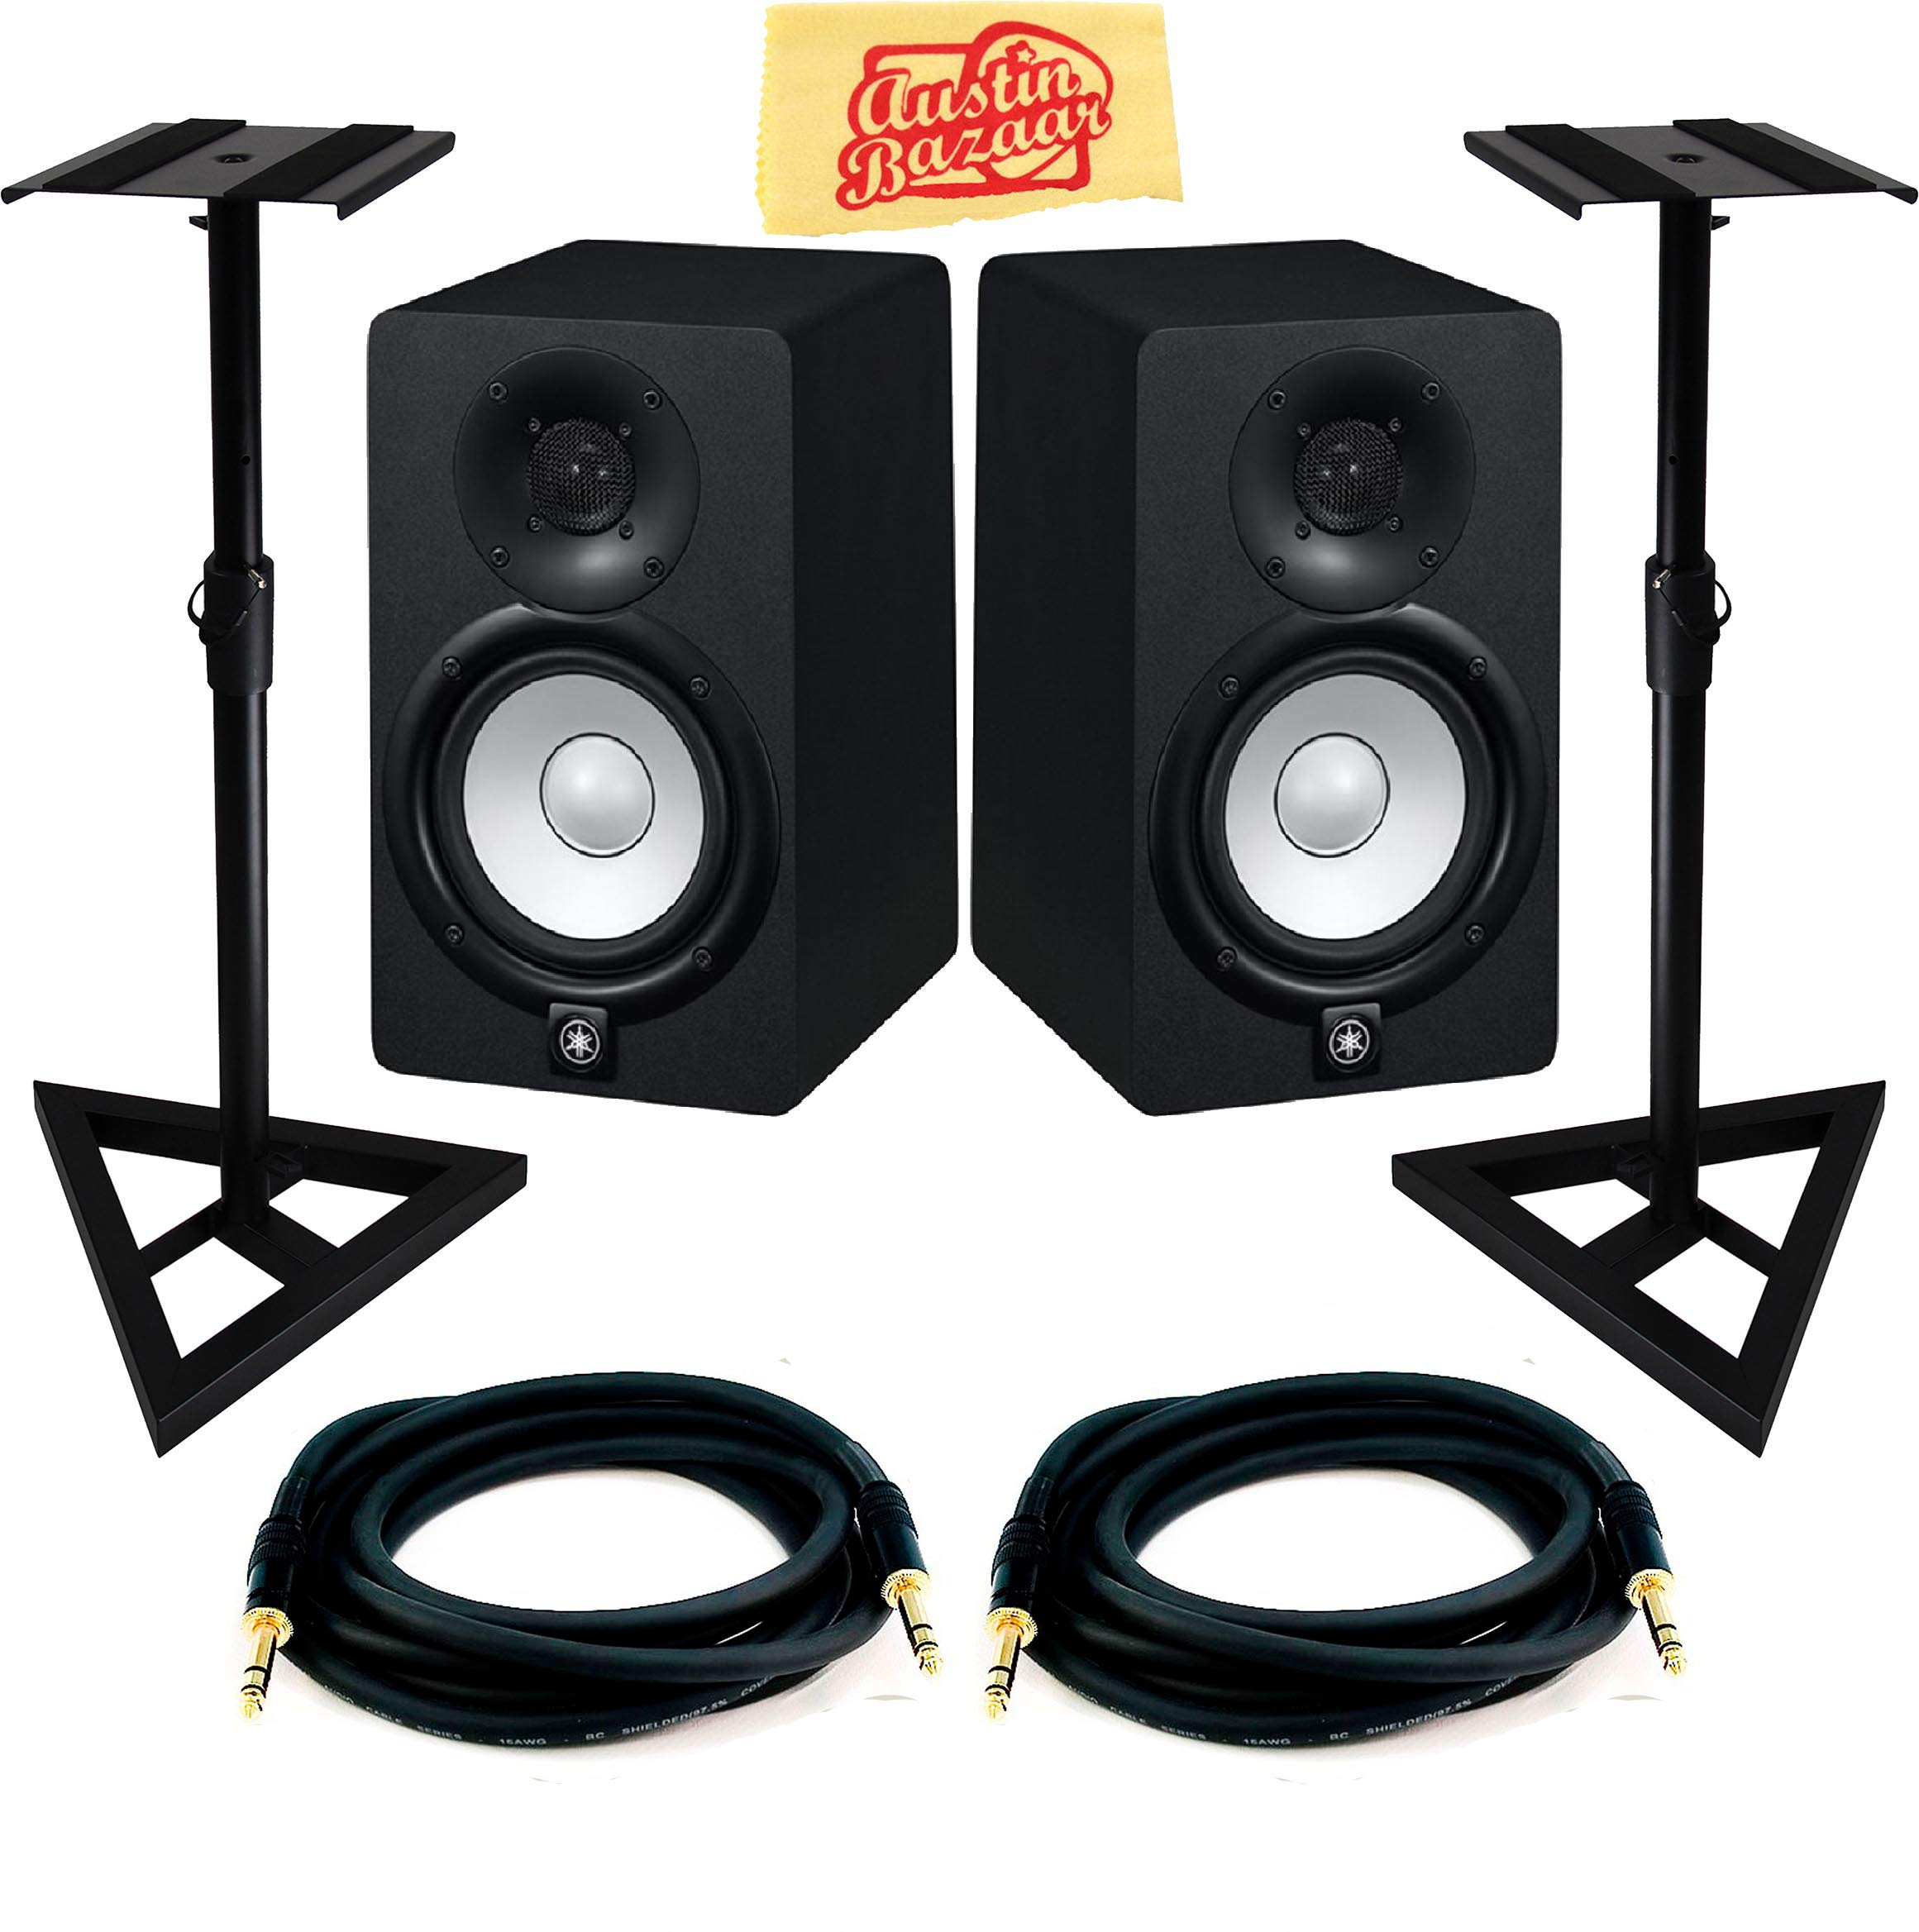 Yamaha Hs5 Powered Studio Monitor Pair Bundle With Two Monitors Stands Trs Cables And Austin Bazaar Polishing Cloth